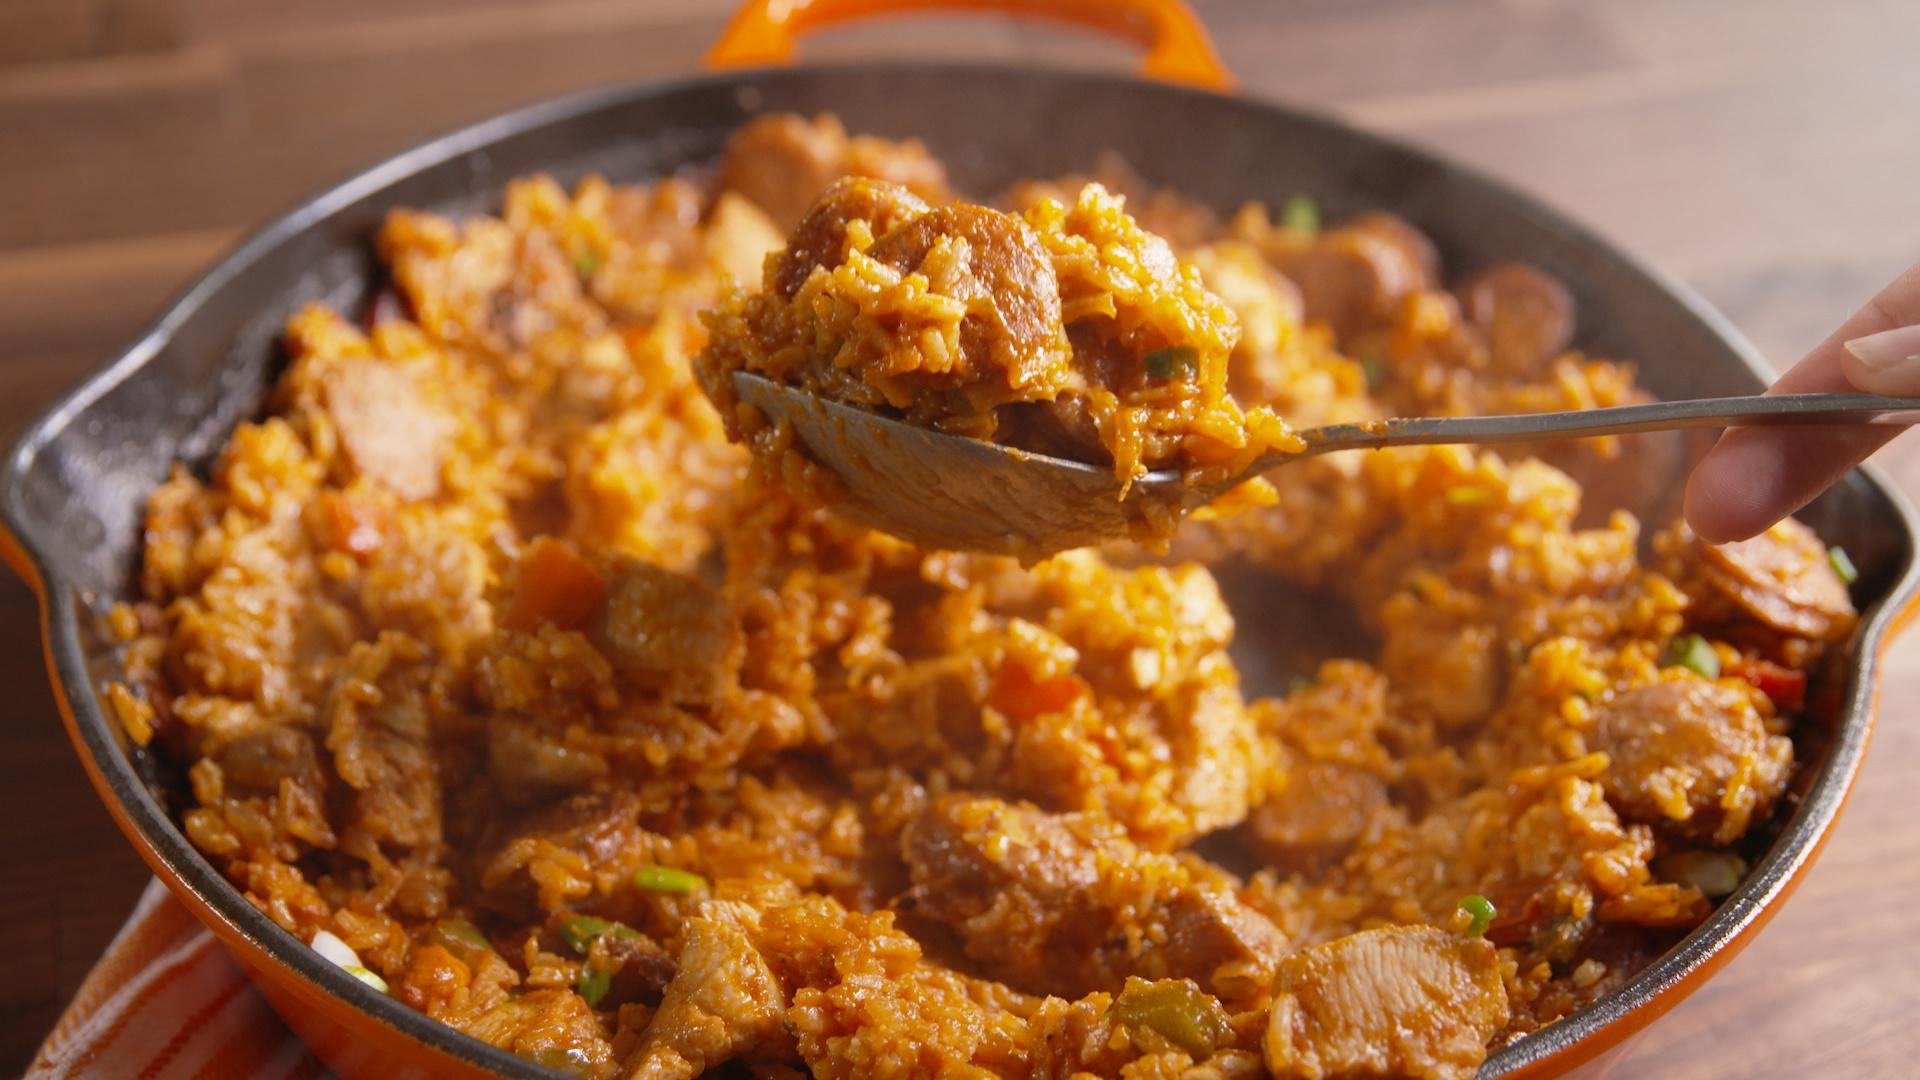 This Cajun Rice Bake Will Heat up Any Chilly Fall Night